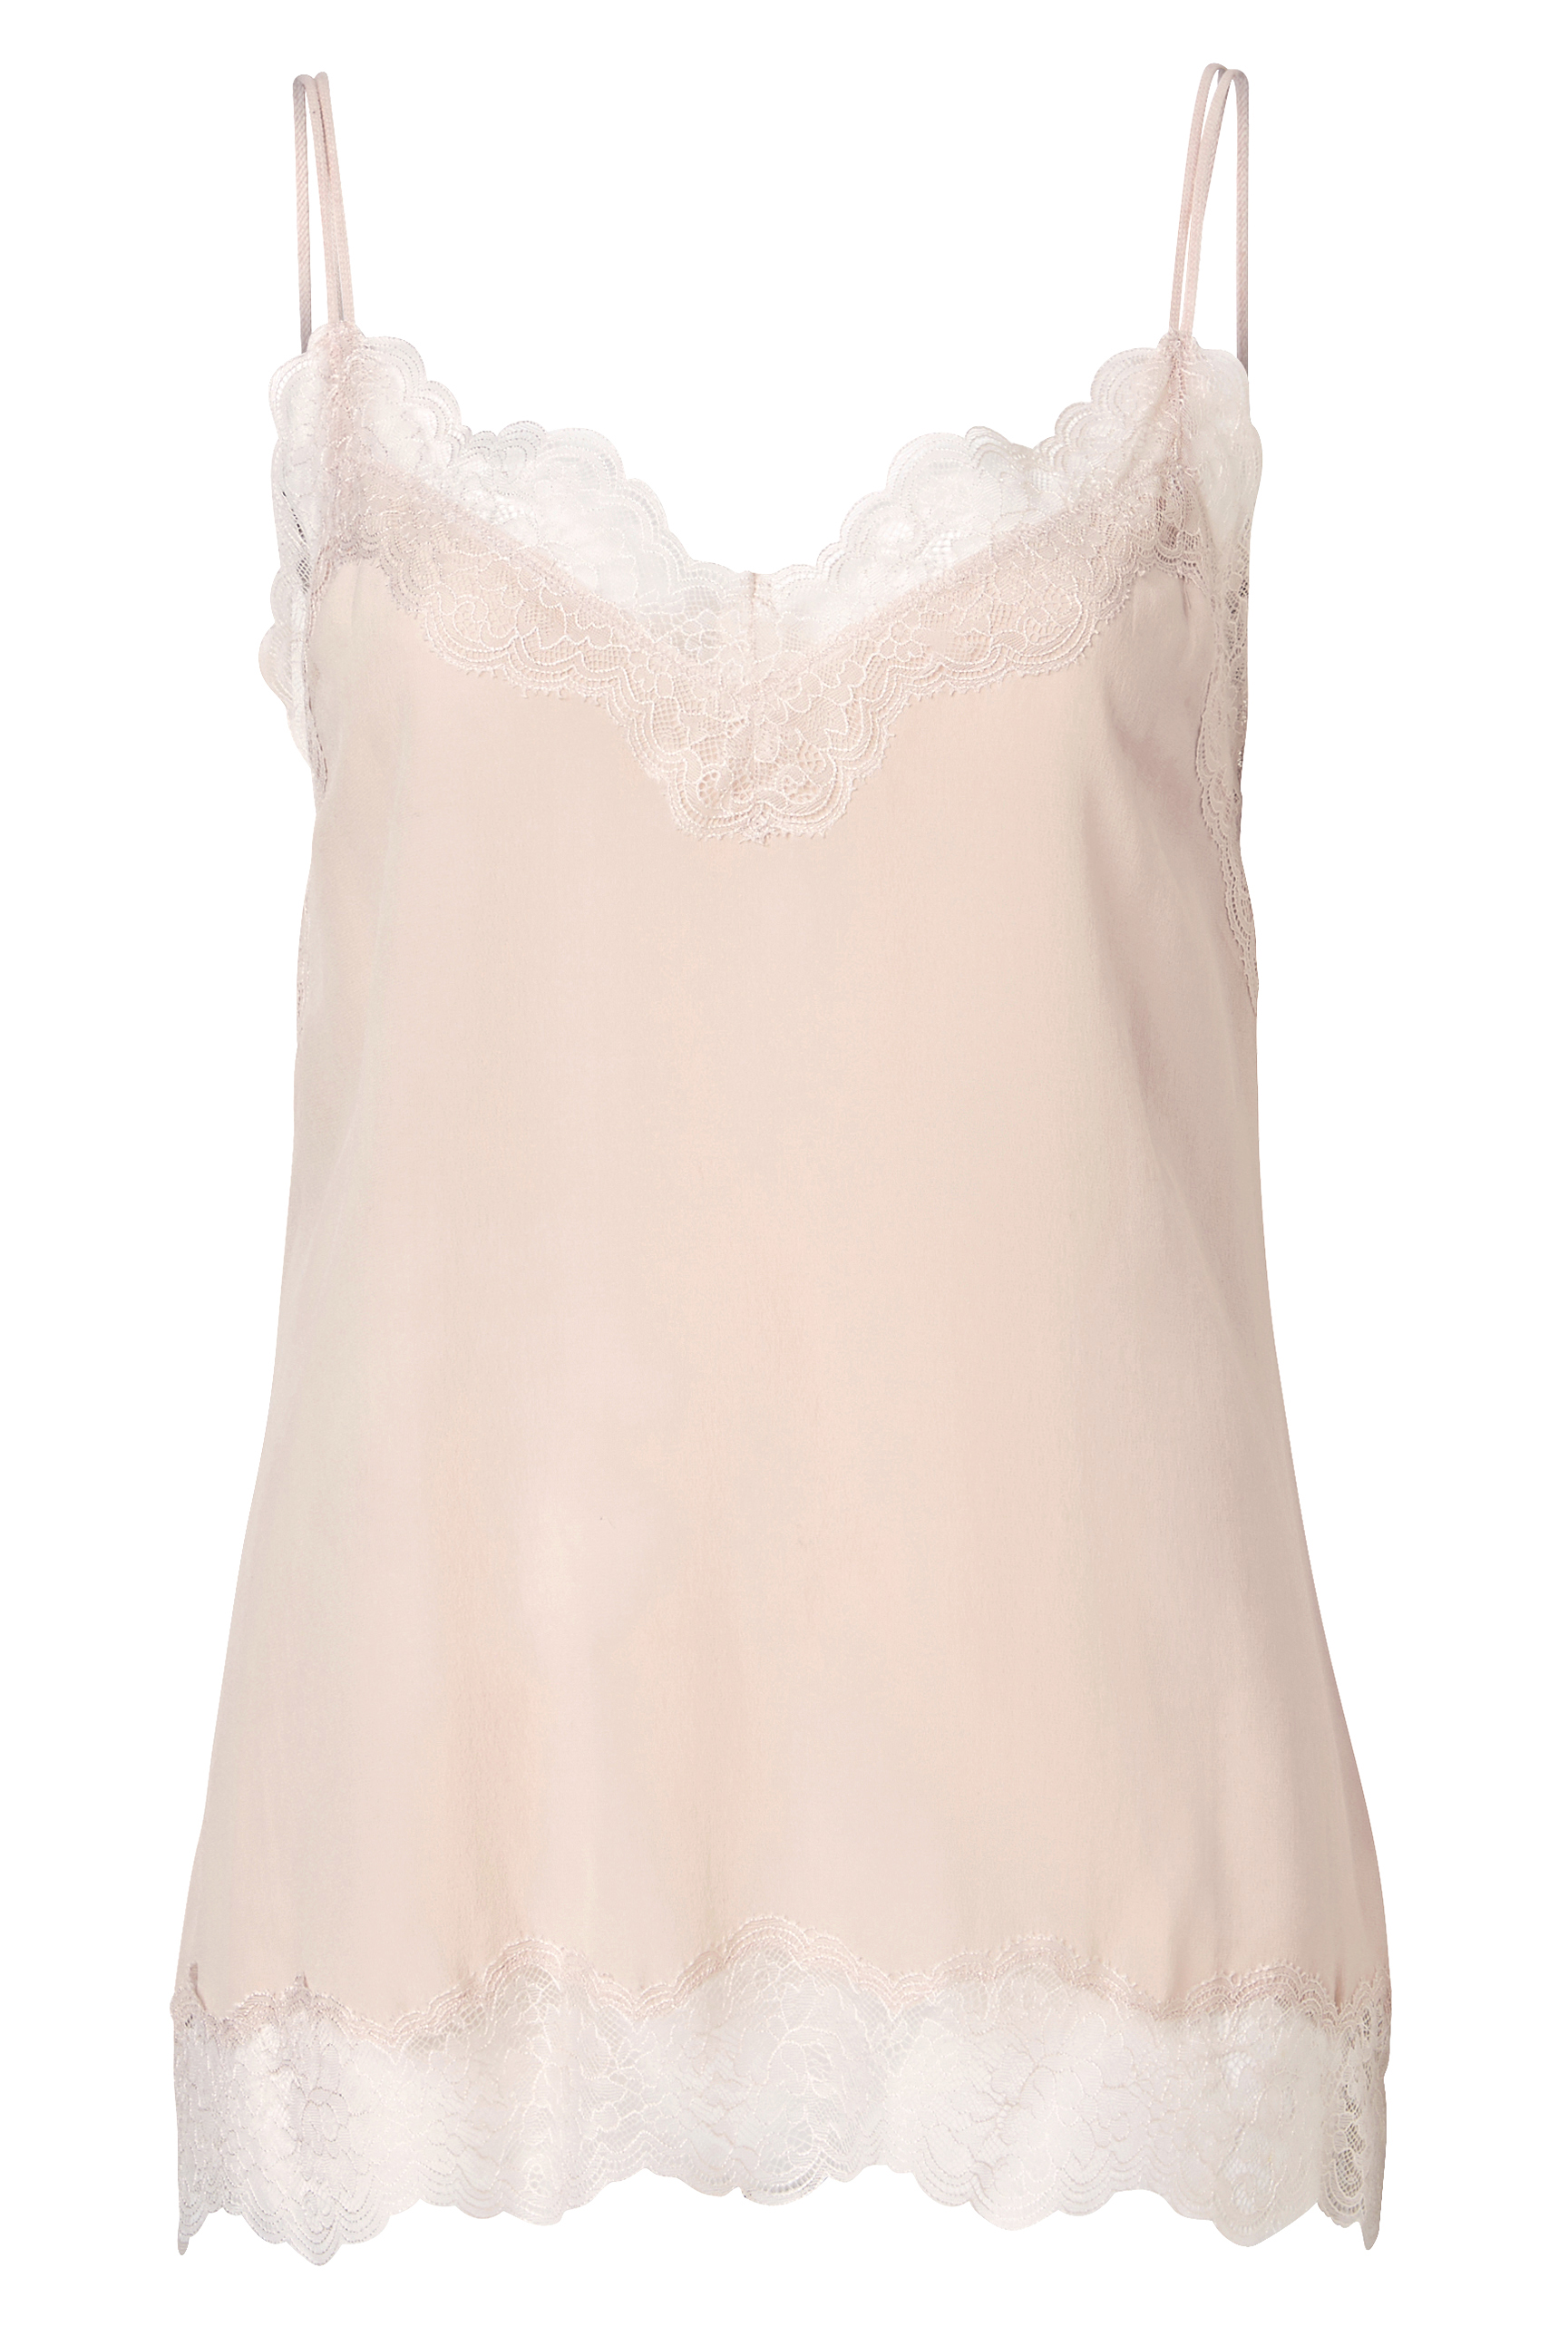 60197712_Witchery Lace Trim Cami, RRP $139.90